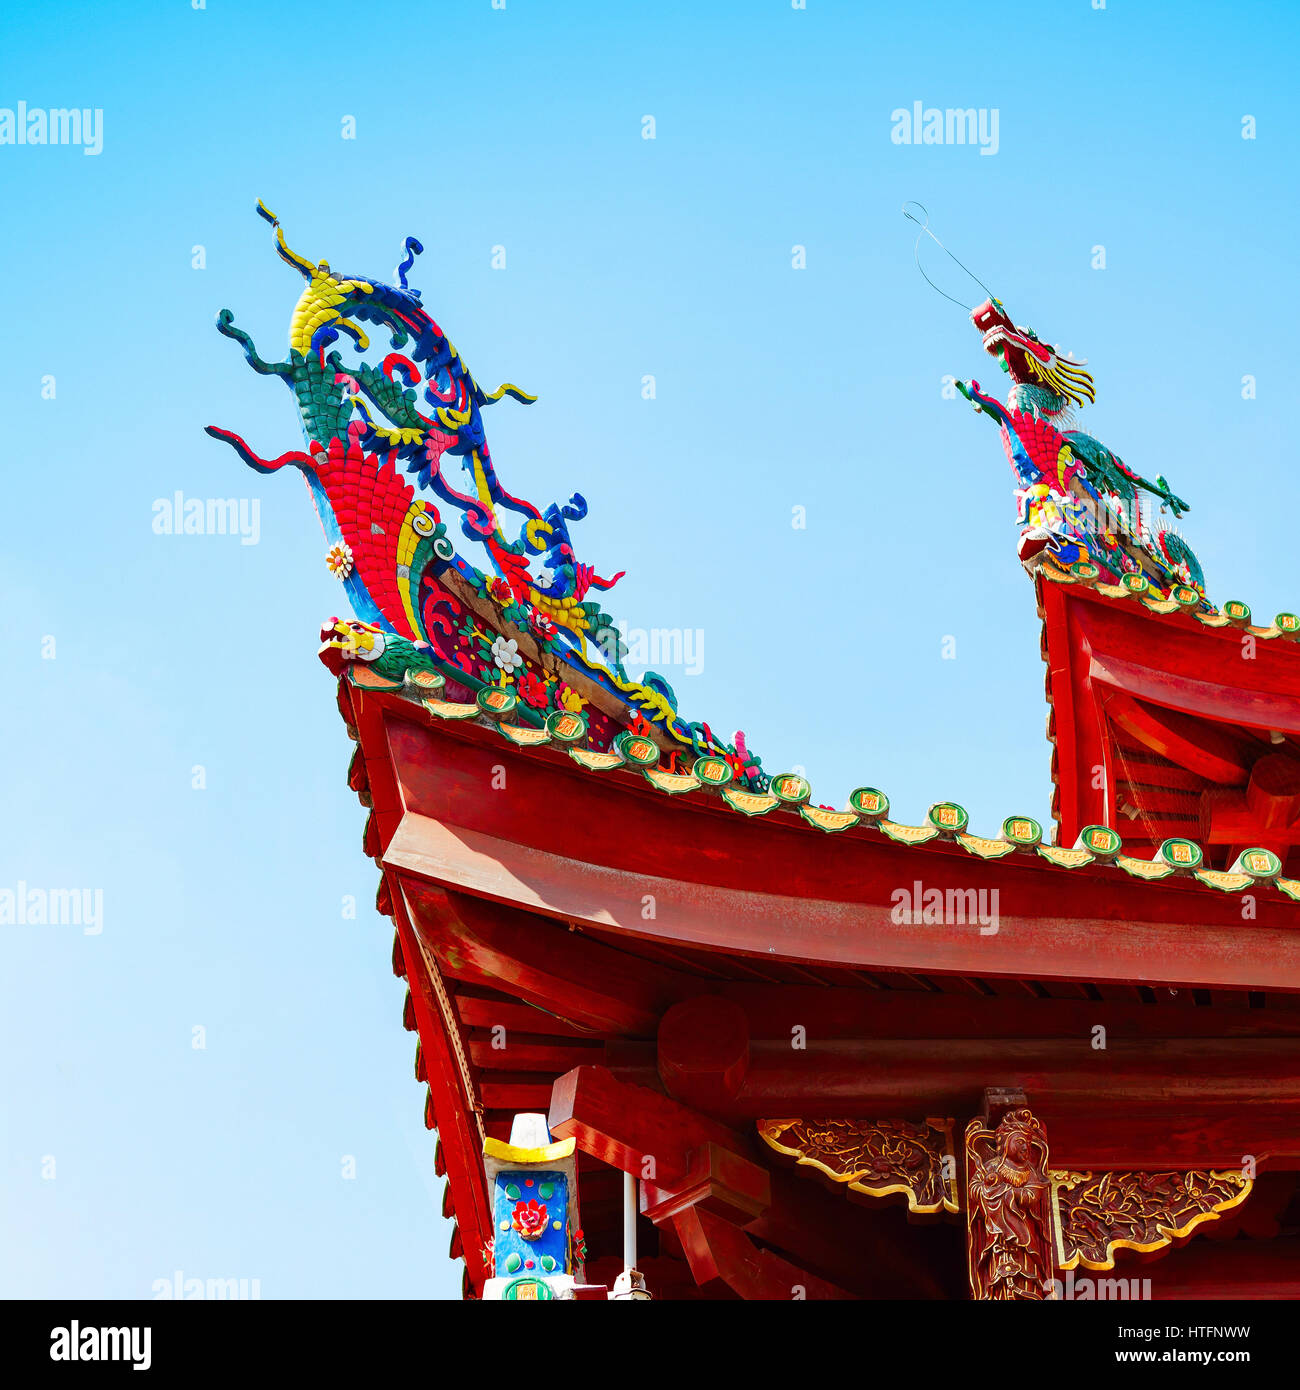 feng shui dragon chinese temple stock photos feng shui dragon chinese temple stock images alamy. Black Bedroom Furniture Sets. Home Design Ideas